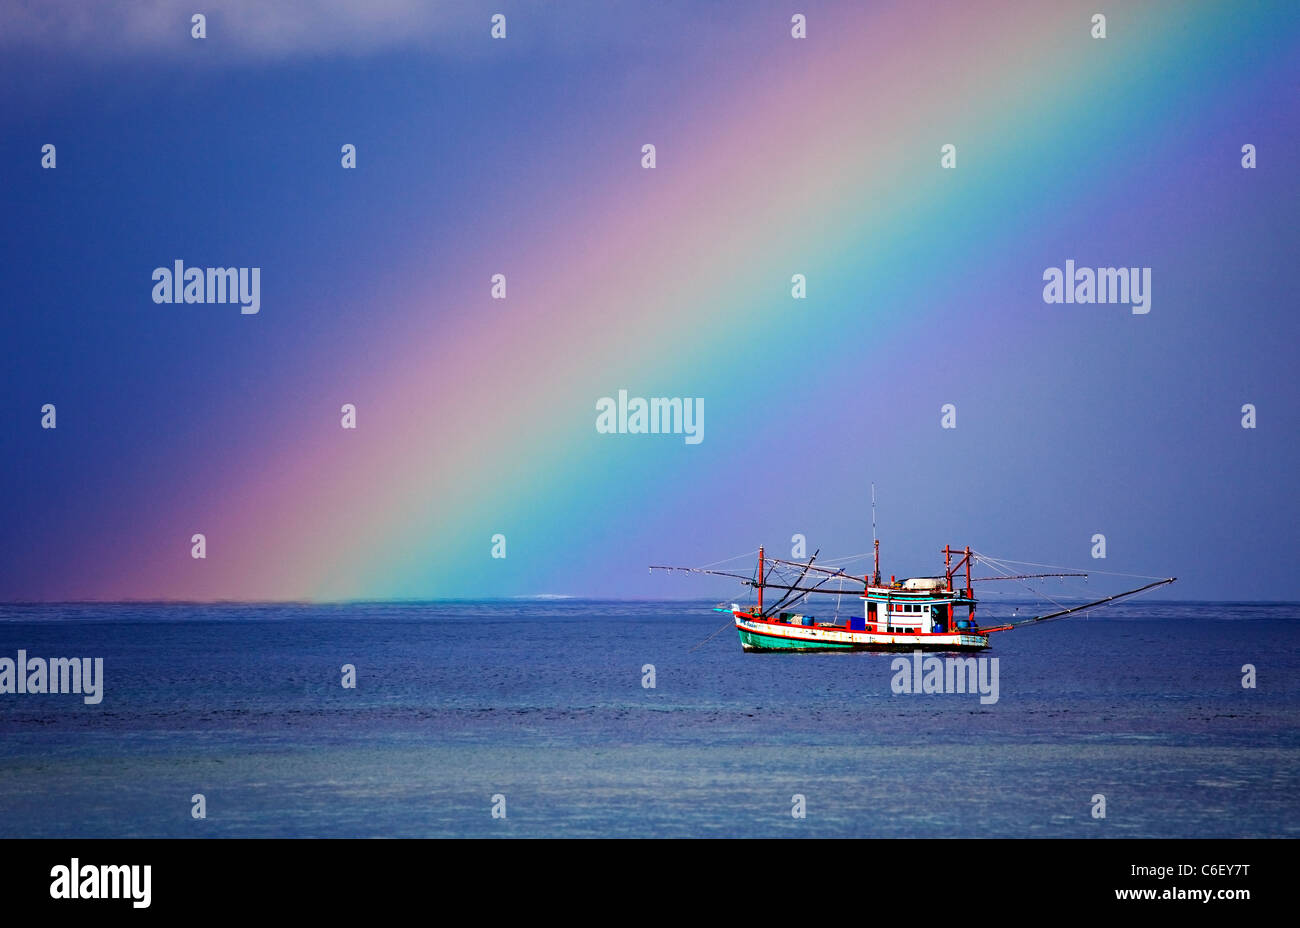 A Rainbow and Fishing Boat in Thailand - Stock Image